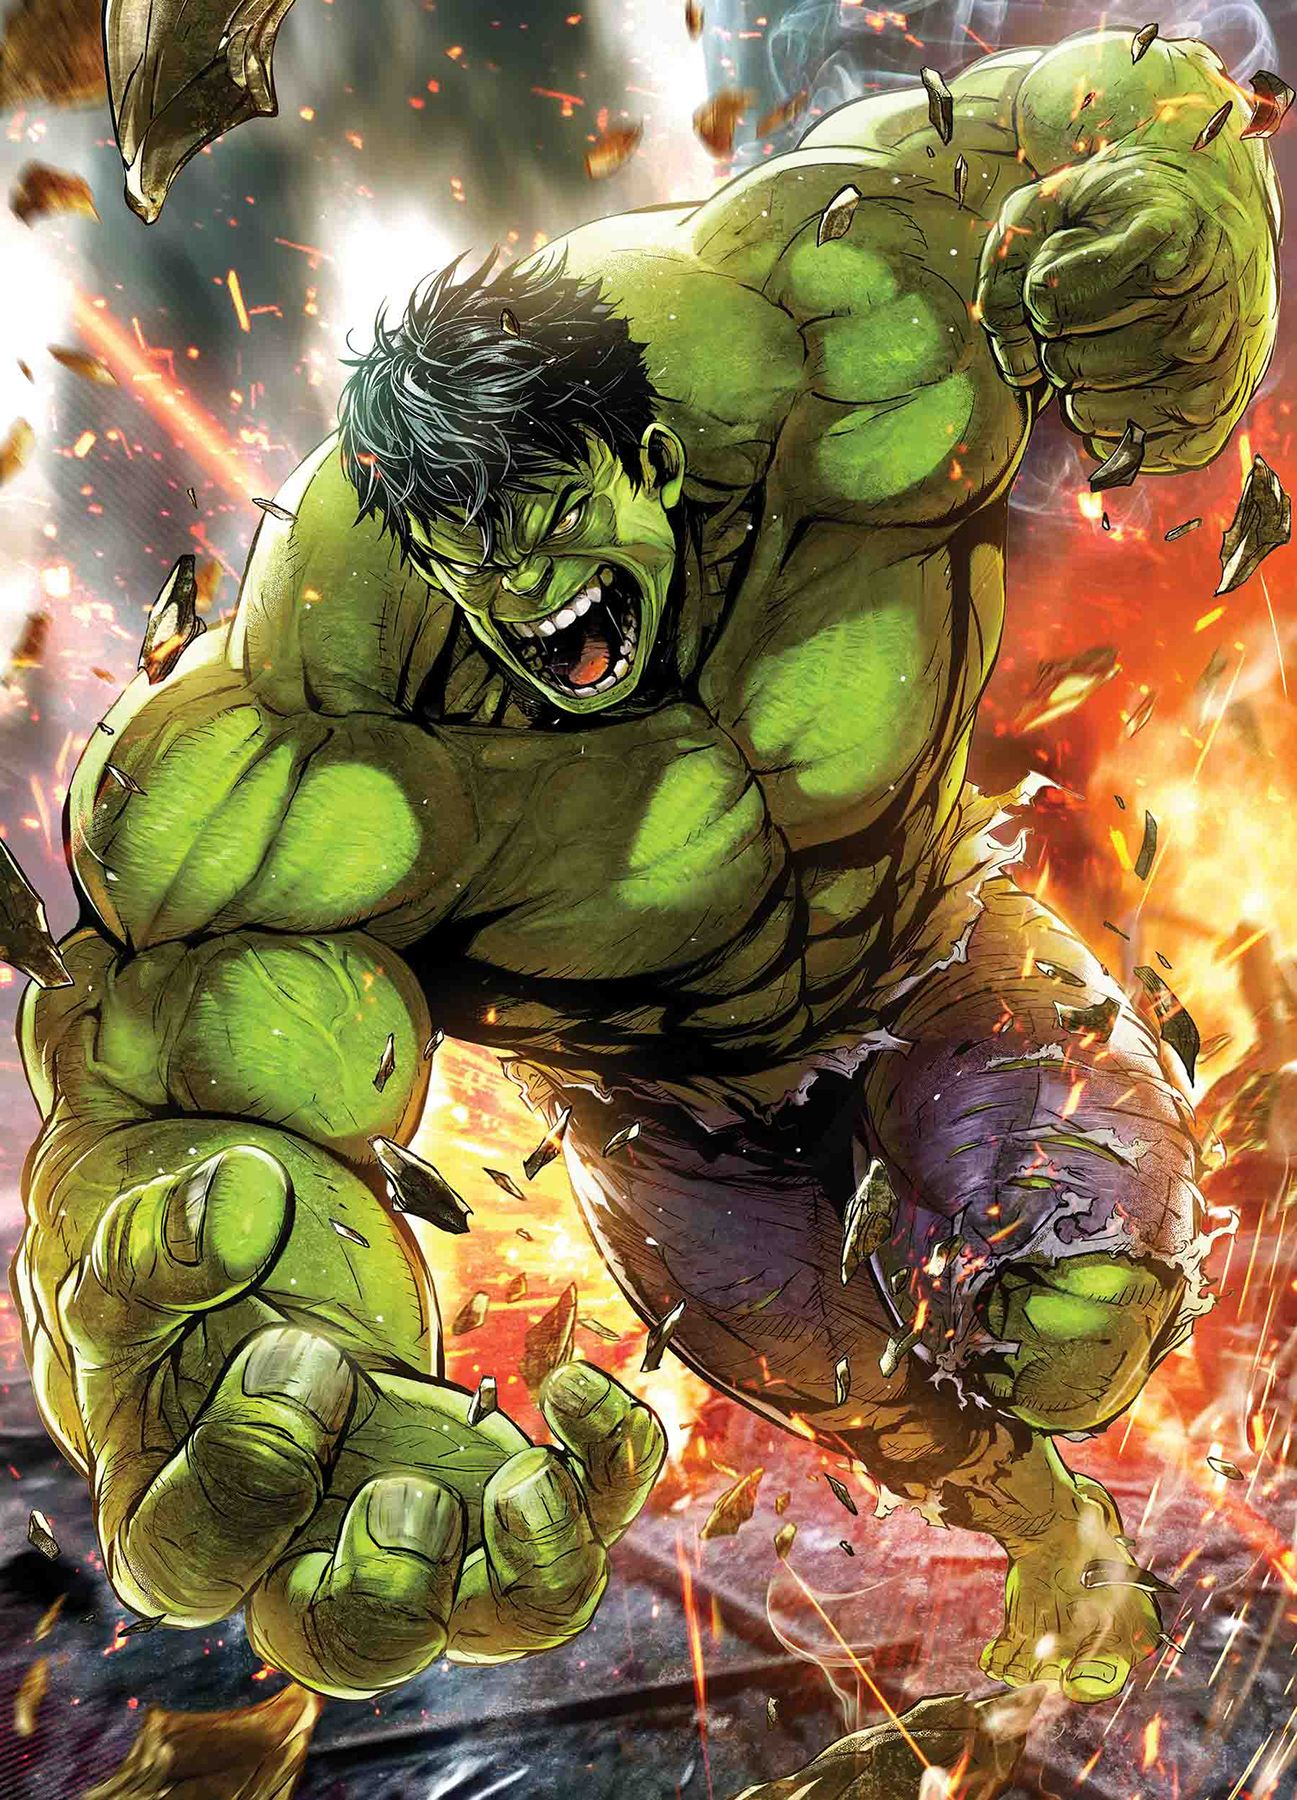 This is a photo of Stupendous Picture of the Hulk